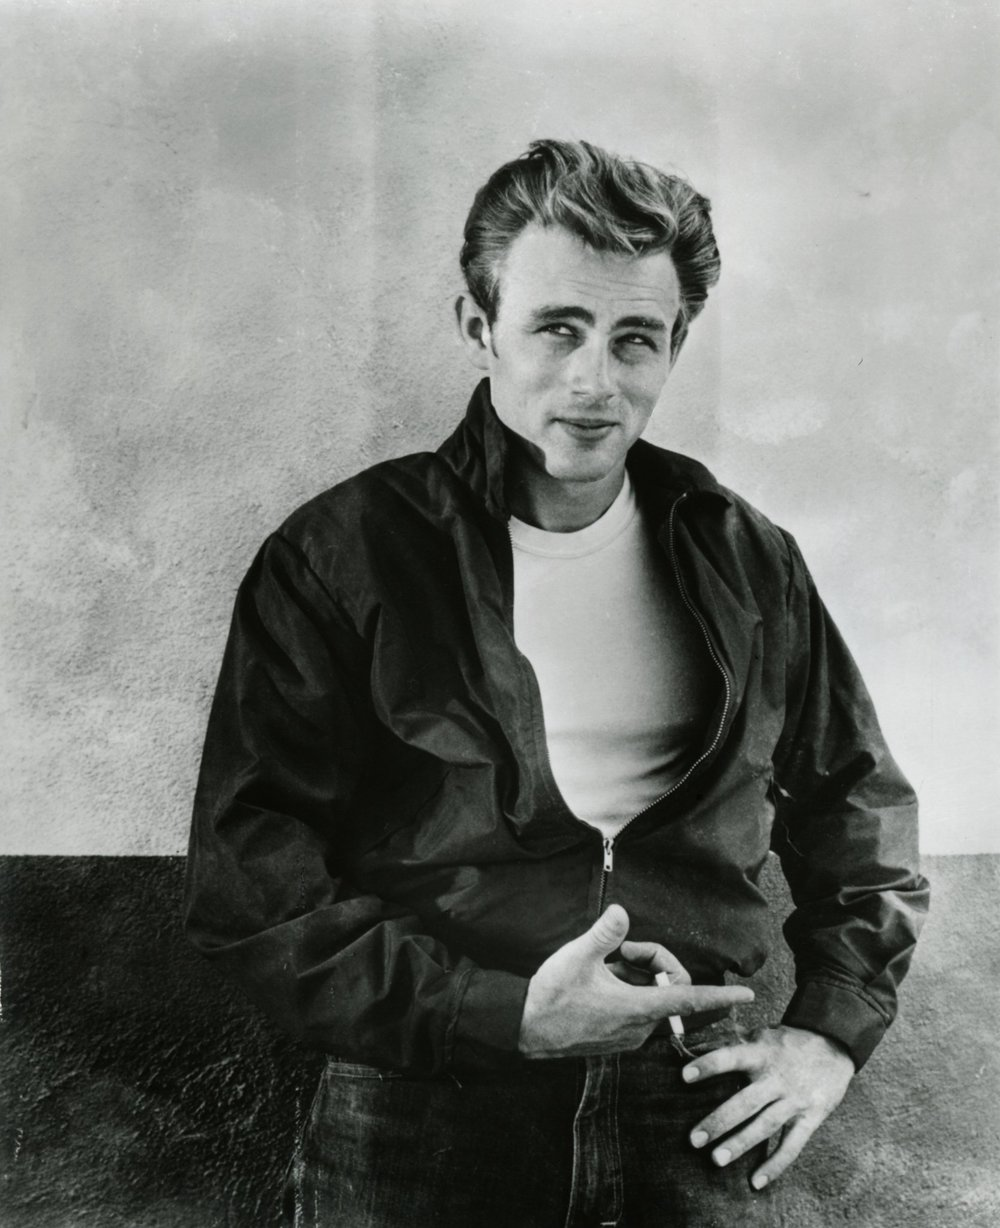 """James Dean: Bisexual Martyr - by Caden Mark Gardner""""His Giant co-star Elizabeth Taylor said he was gay. His friend Martin Landau said he was not. His Rebel Without A Cause director Nicholas Ray said he was gay. His acting peer Liz Sheridan wrote a whole book on their supposed romance, while also throwing in the caveat he was having an affair with a man. He had been linked to actresses Pier Angeli and Ursula Andress […] Dean is claimed by all, tugged back and forth between two sexuality binaries while perhaps, more accurately, belonging somewhere in the middle."""""""